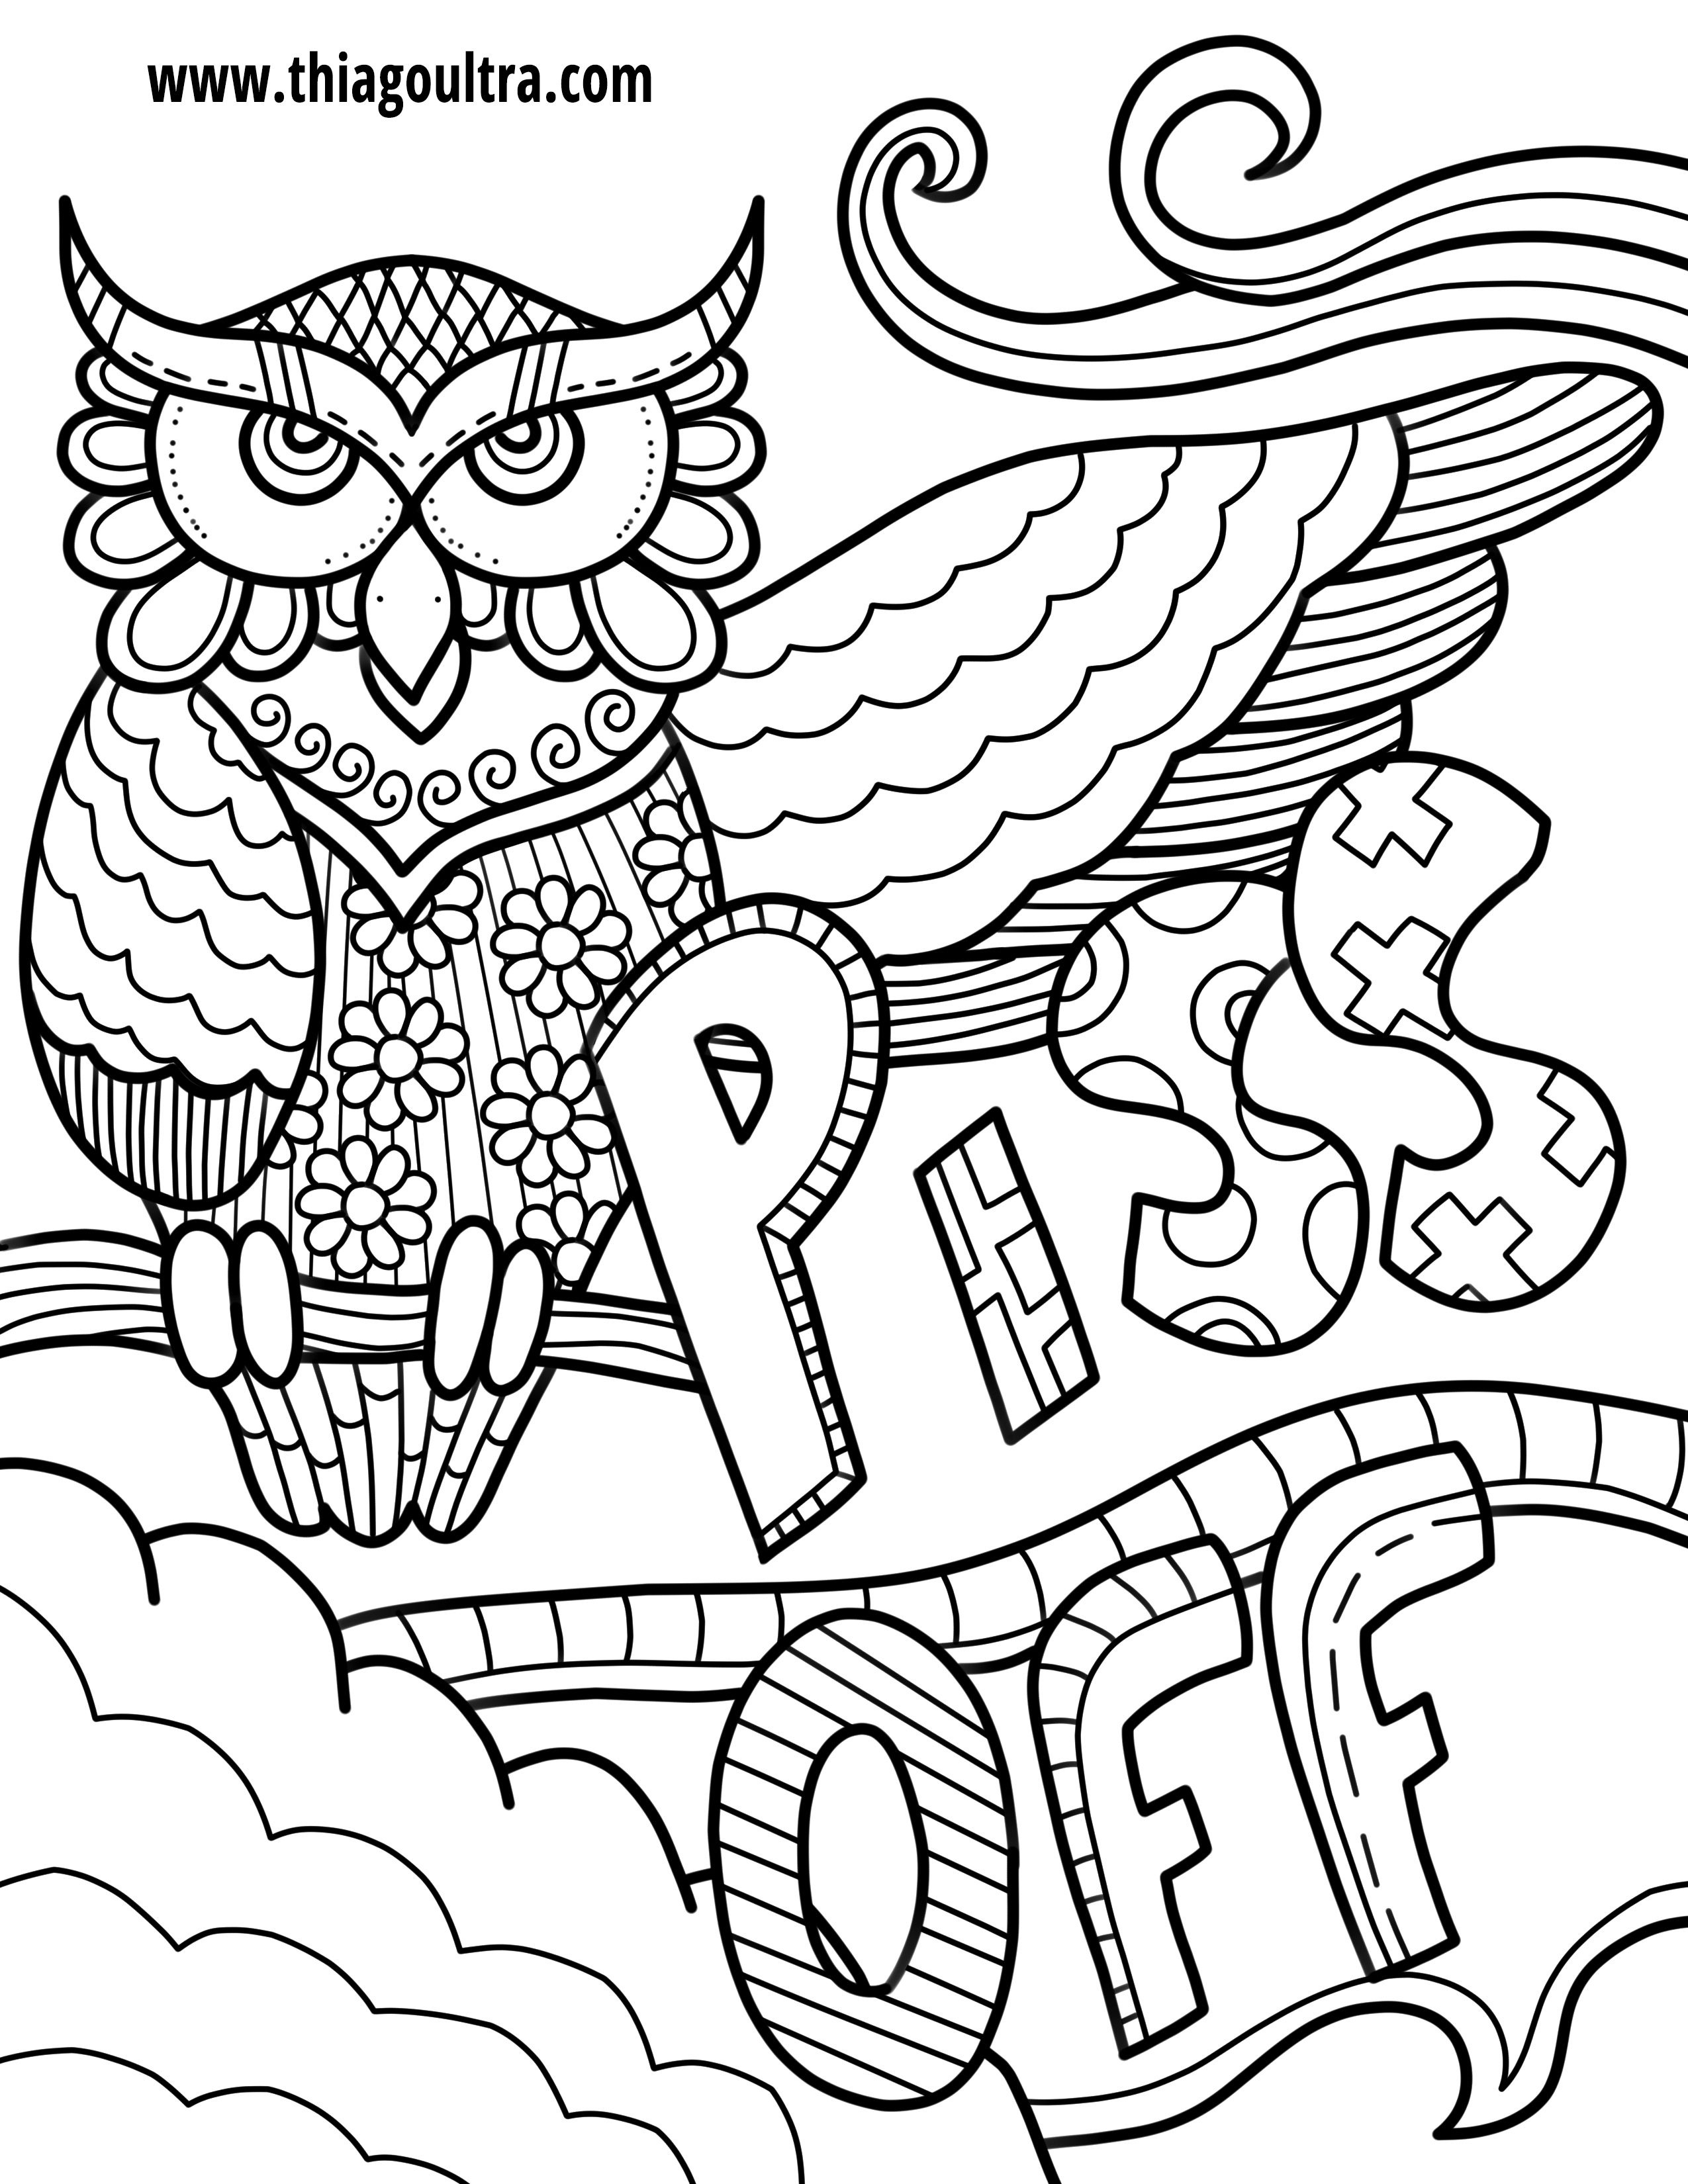 Unique Free Printable Coloring Pages For Adults Only Swear Words - Free Printable Swear Word Coloring Pages